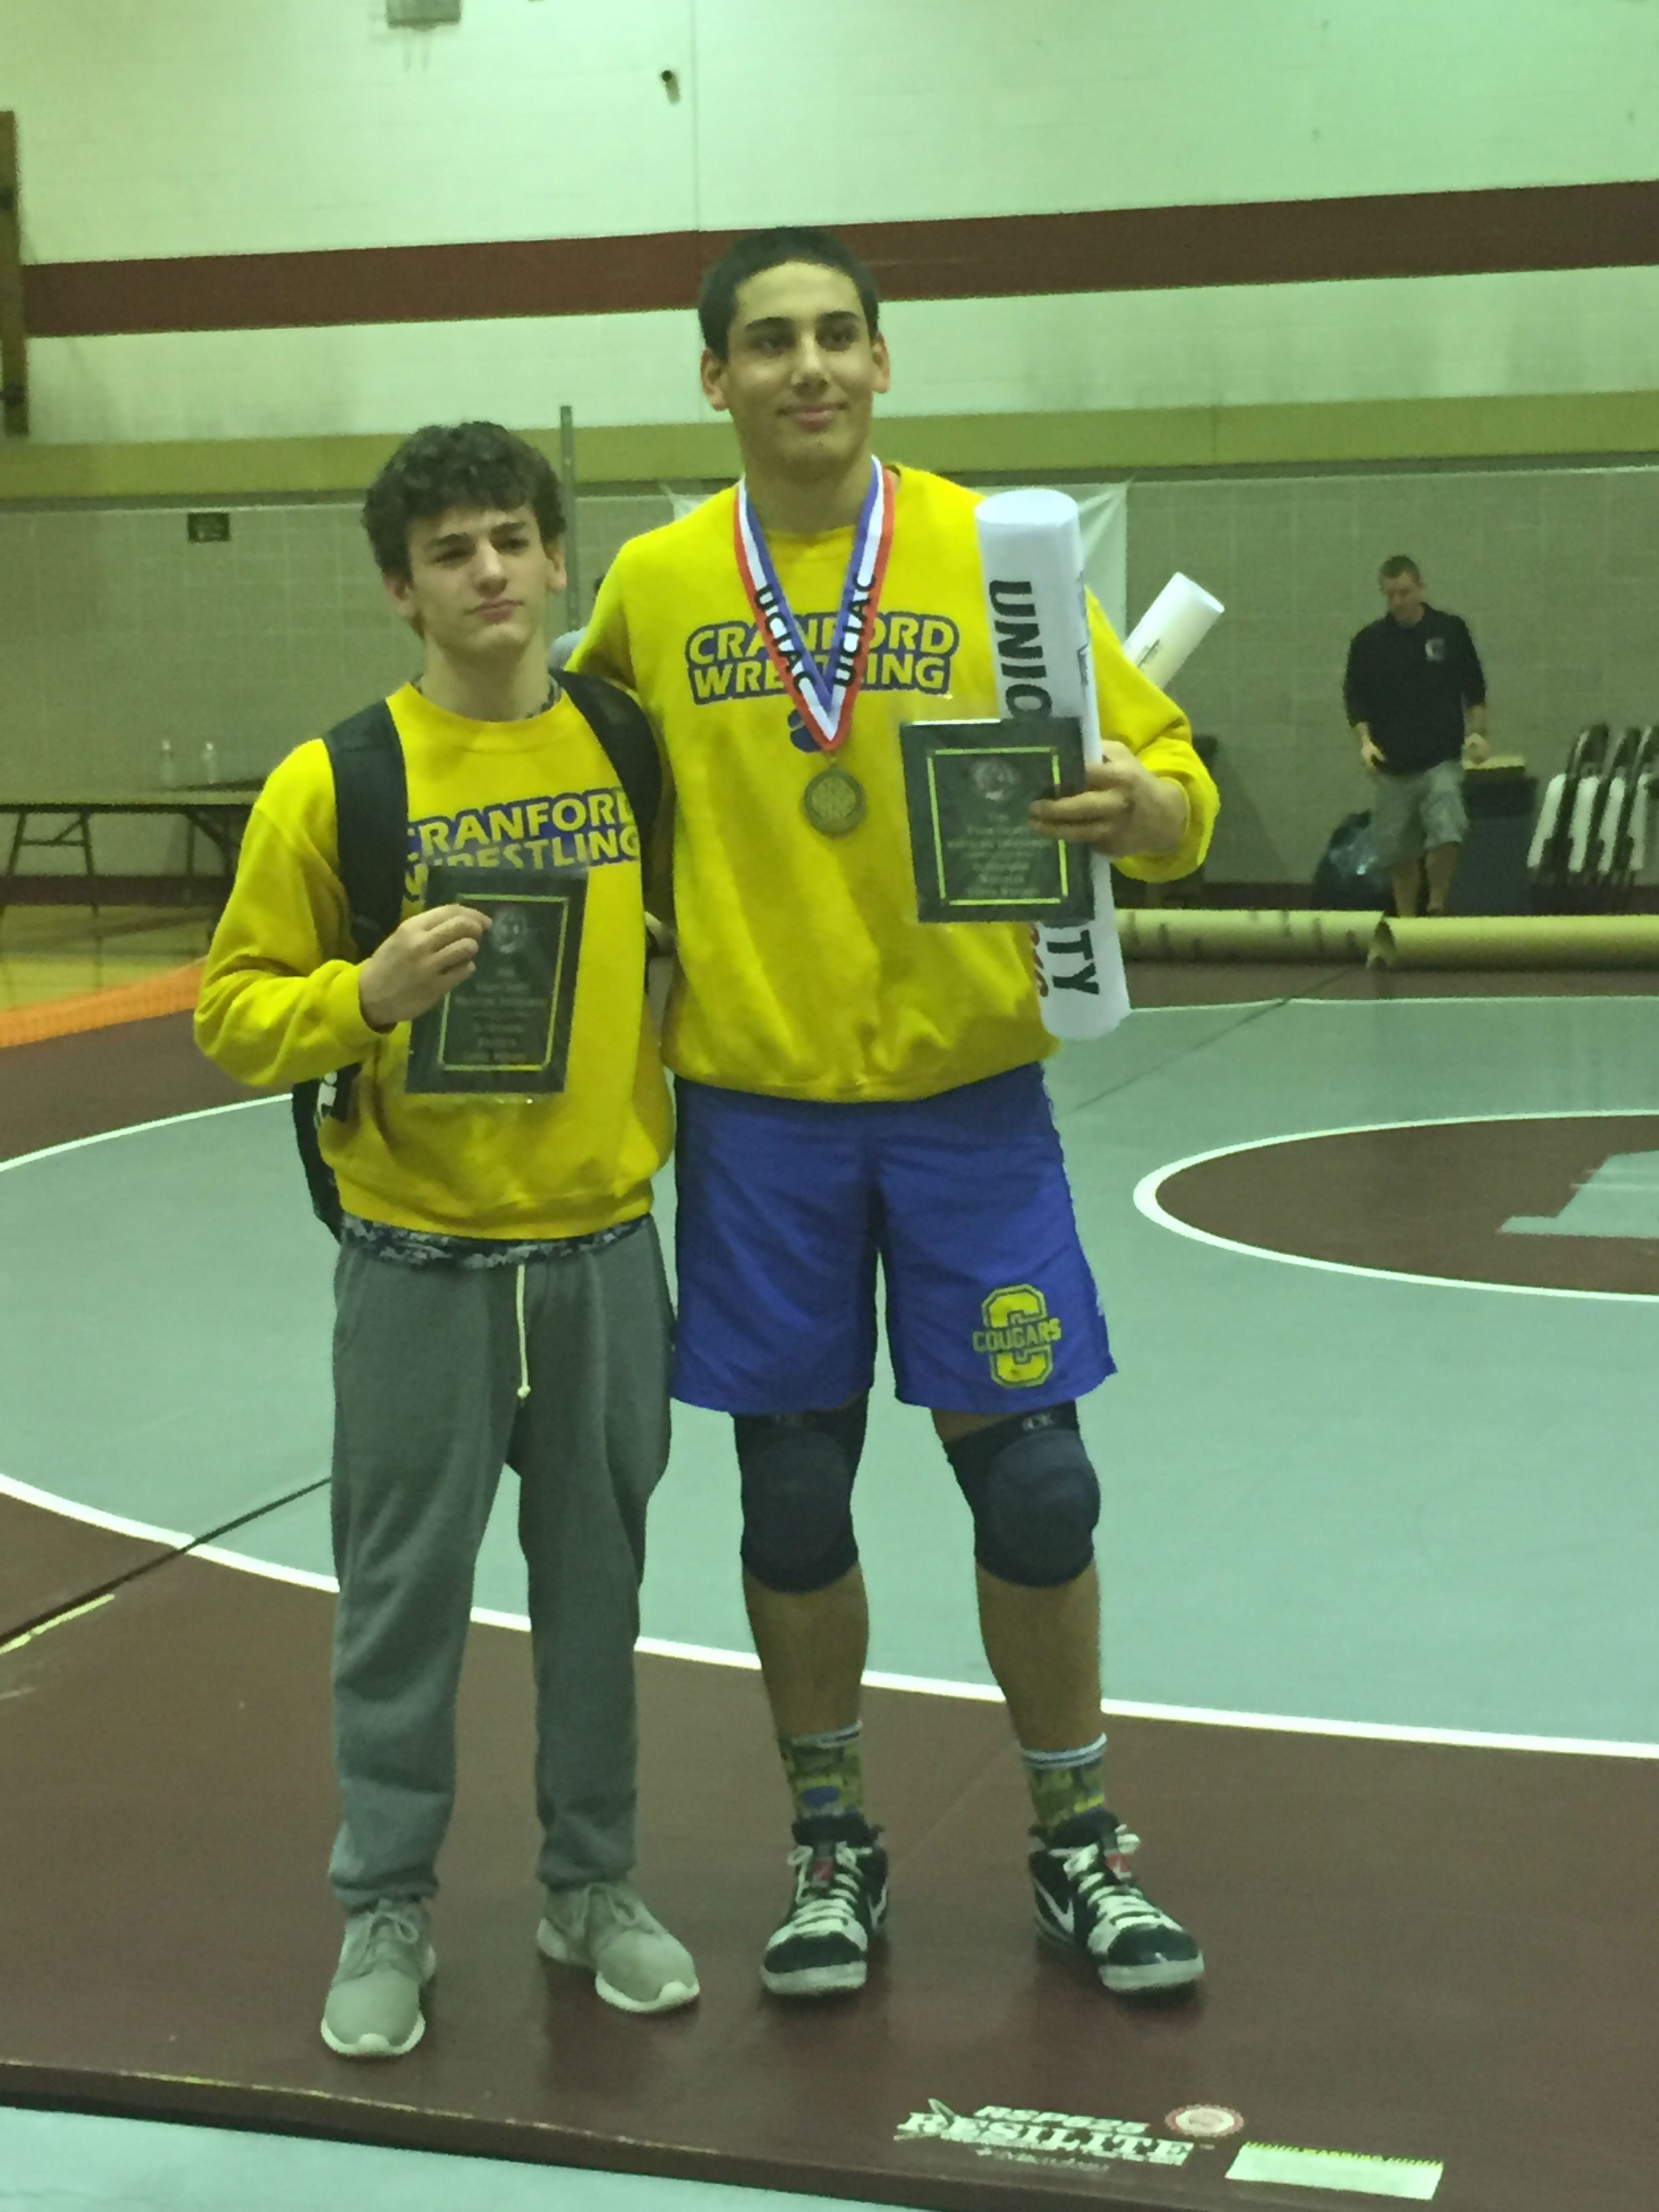 New jersey union county cranford - Outstanding Wrestling Awards Upper And Lower L Anthony Capece And R Alex Esposito Credits K Capece